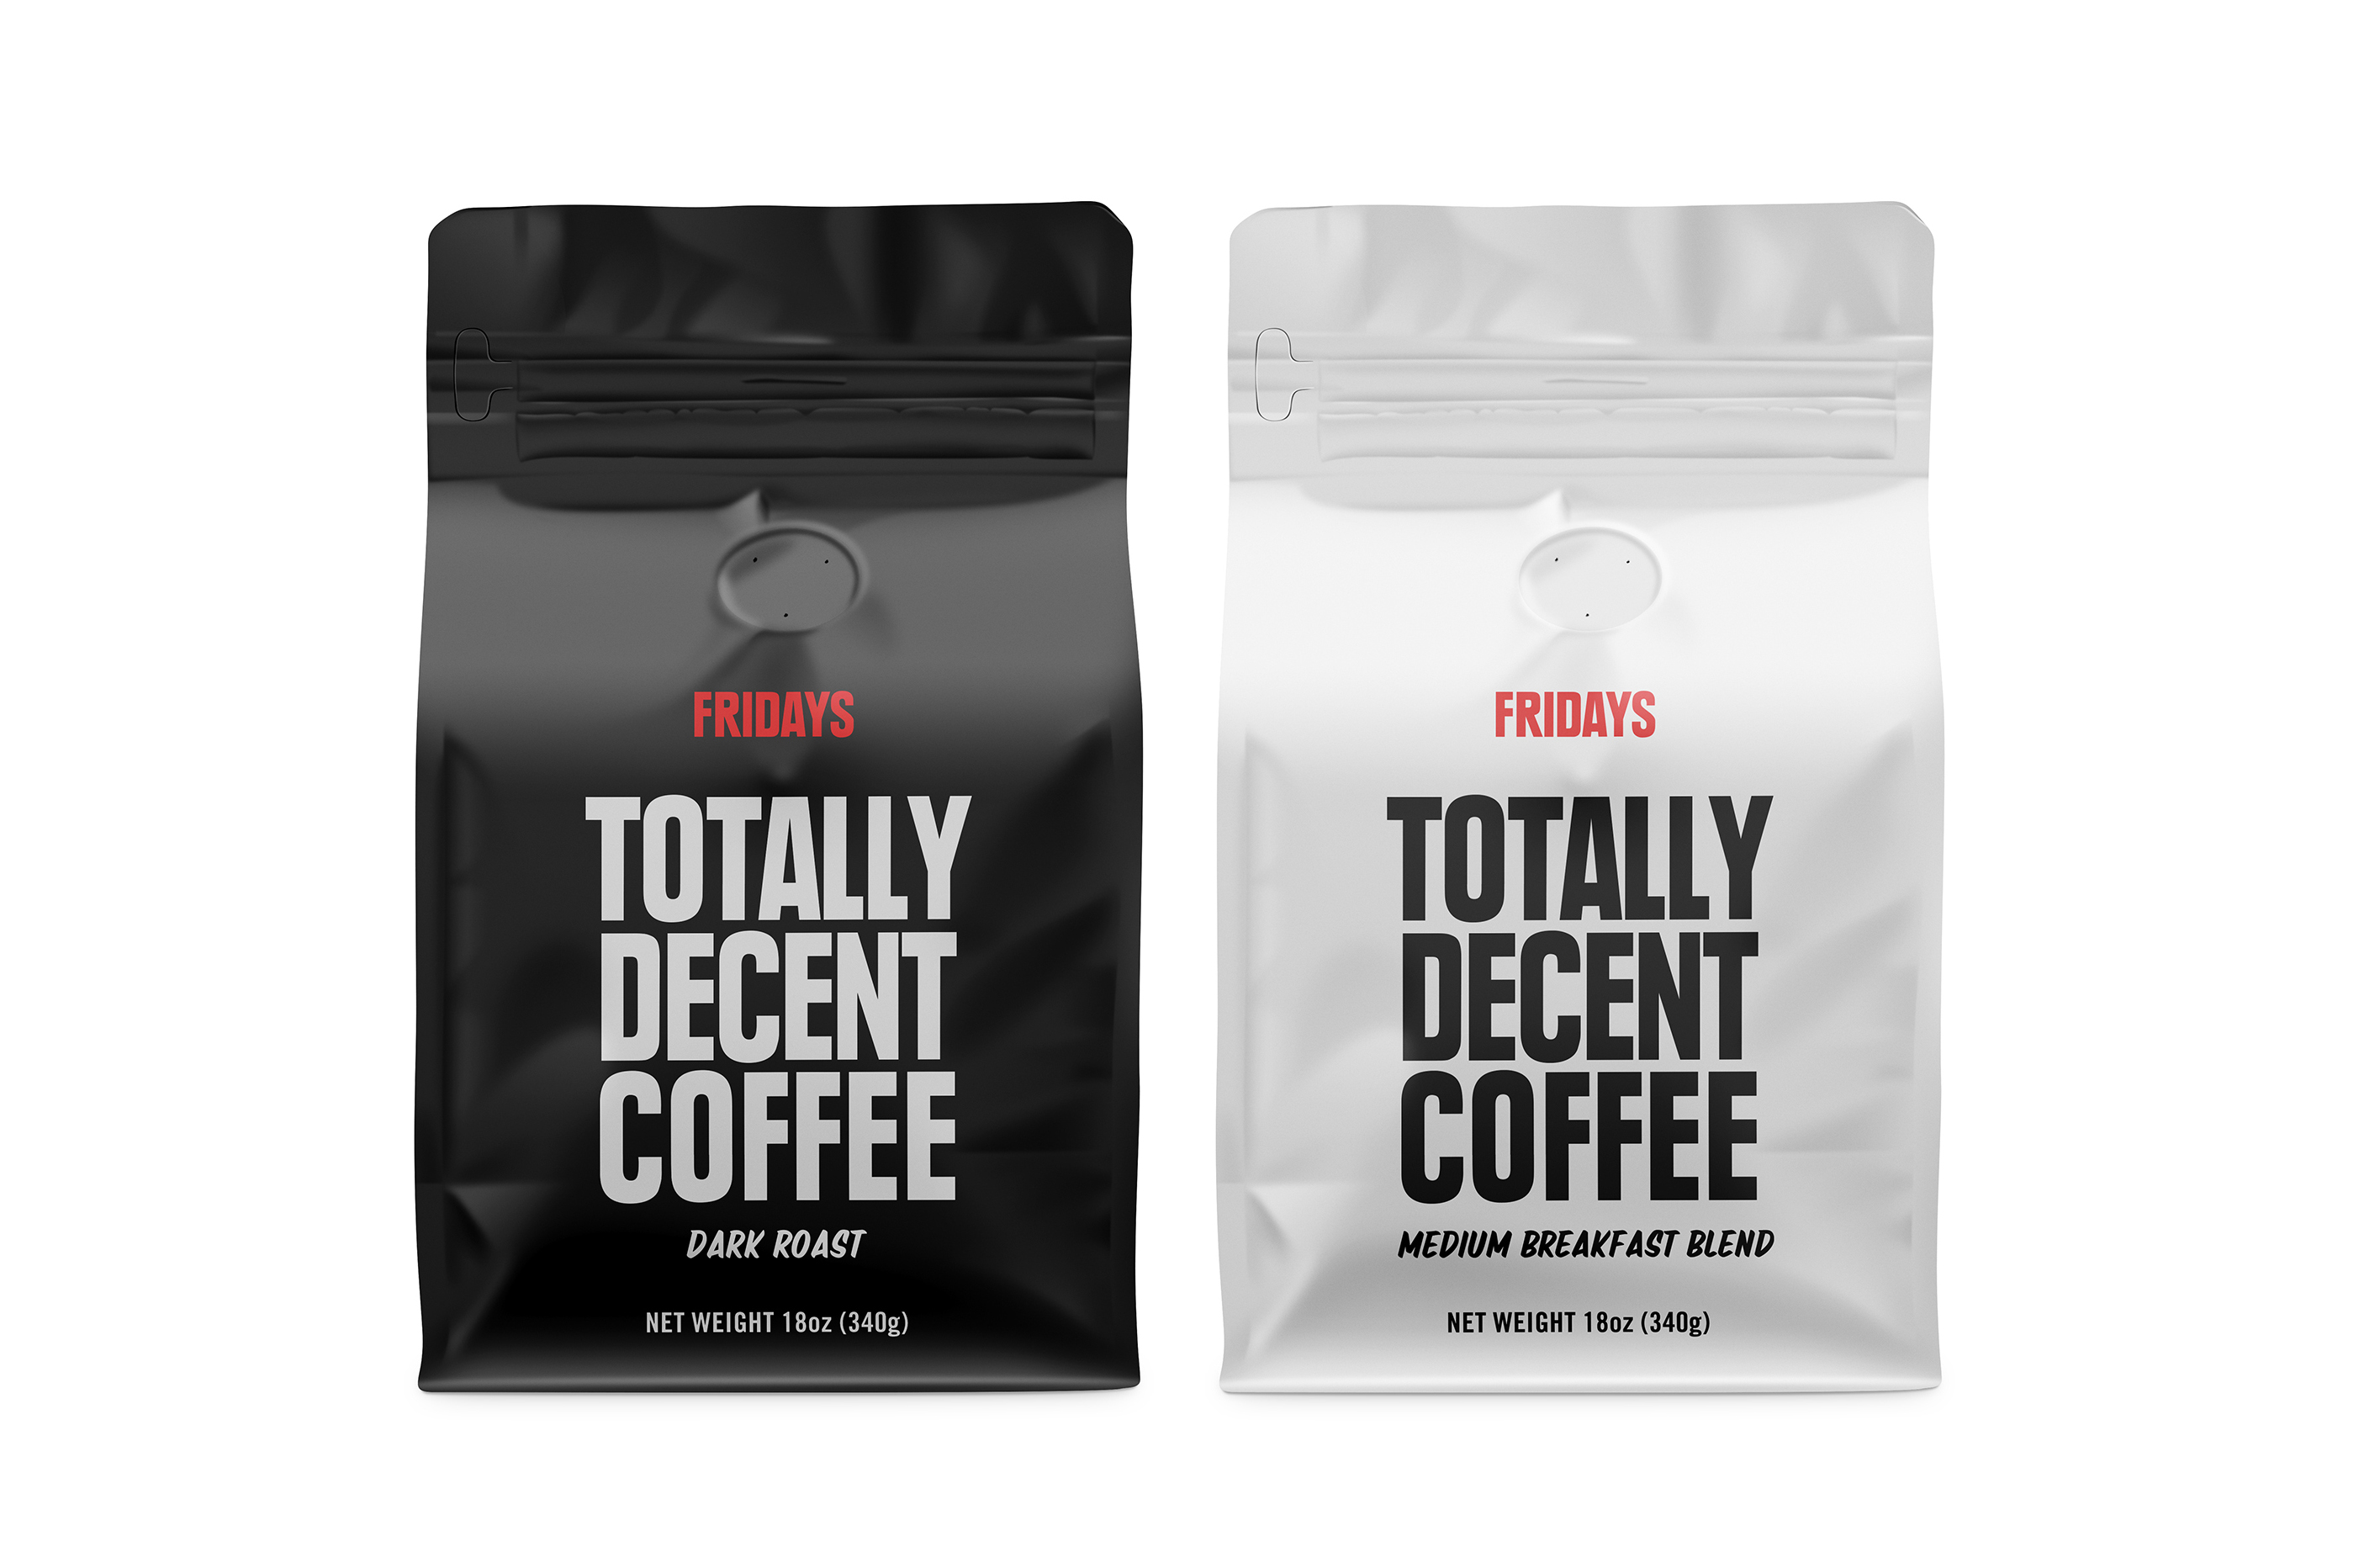 Fridays Totally Decent Coffee Packaging